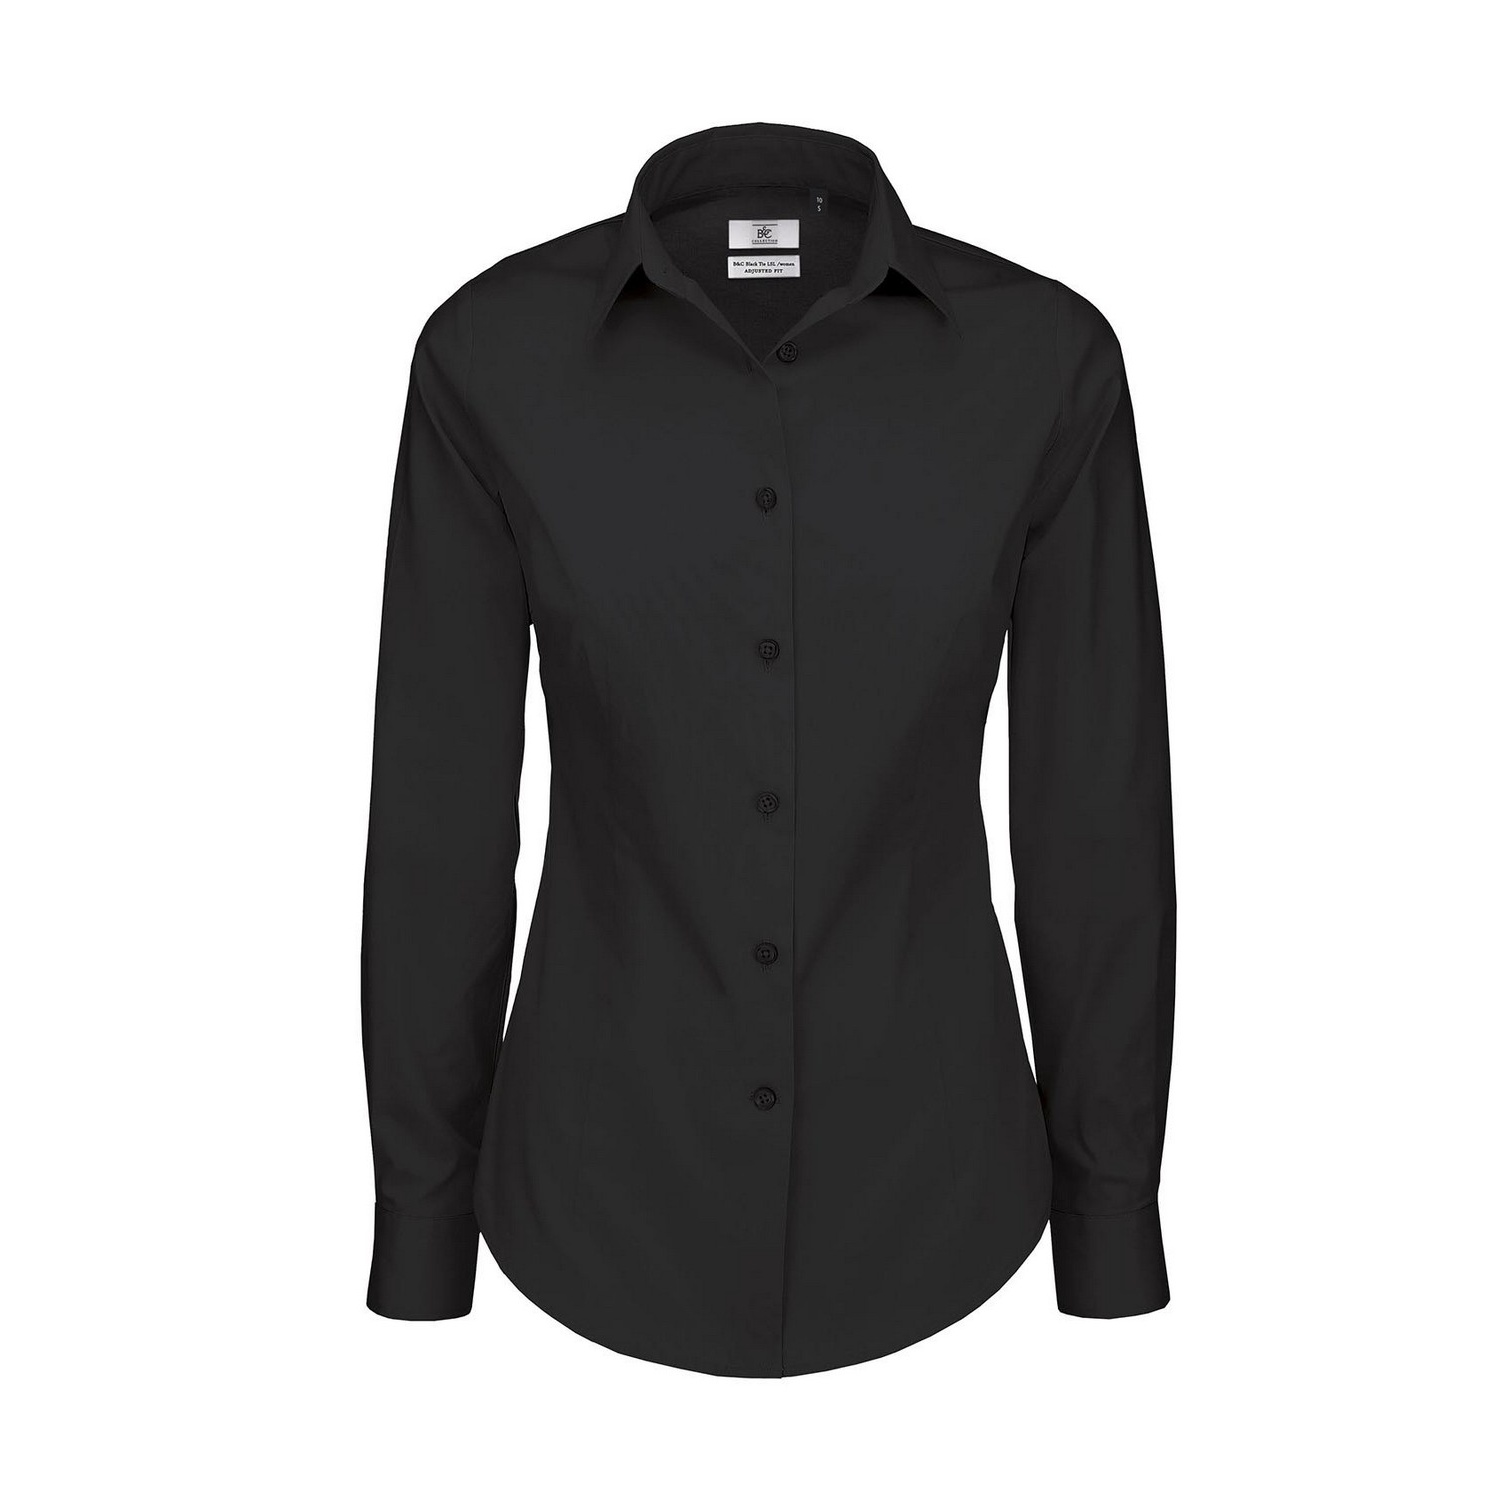 B c womens ladies black tie formal long sleeve plain for Womens work shirts uniforms